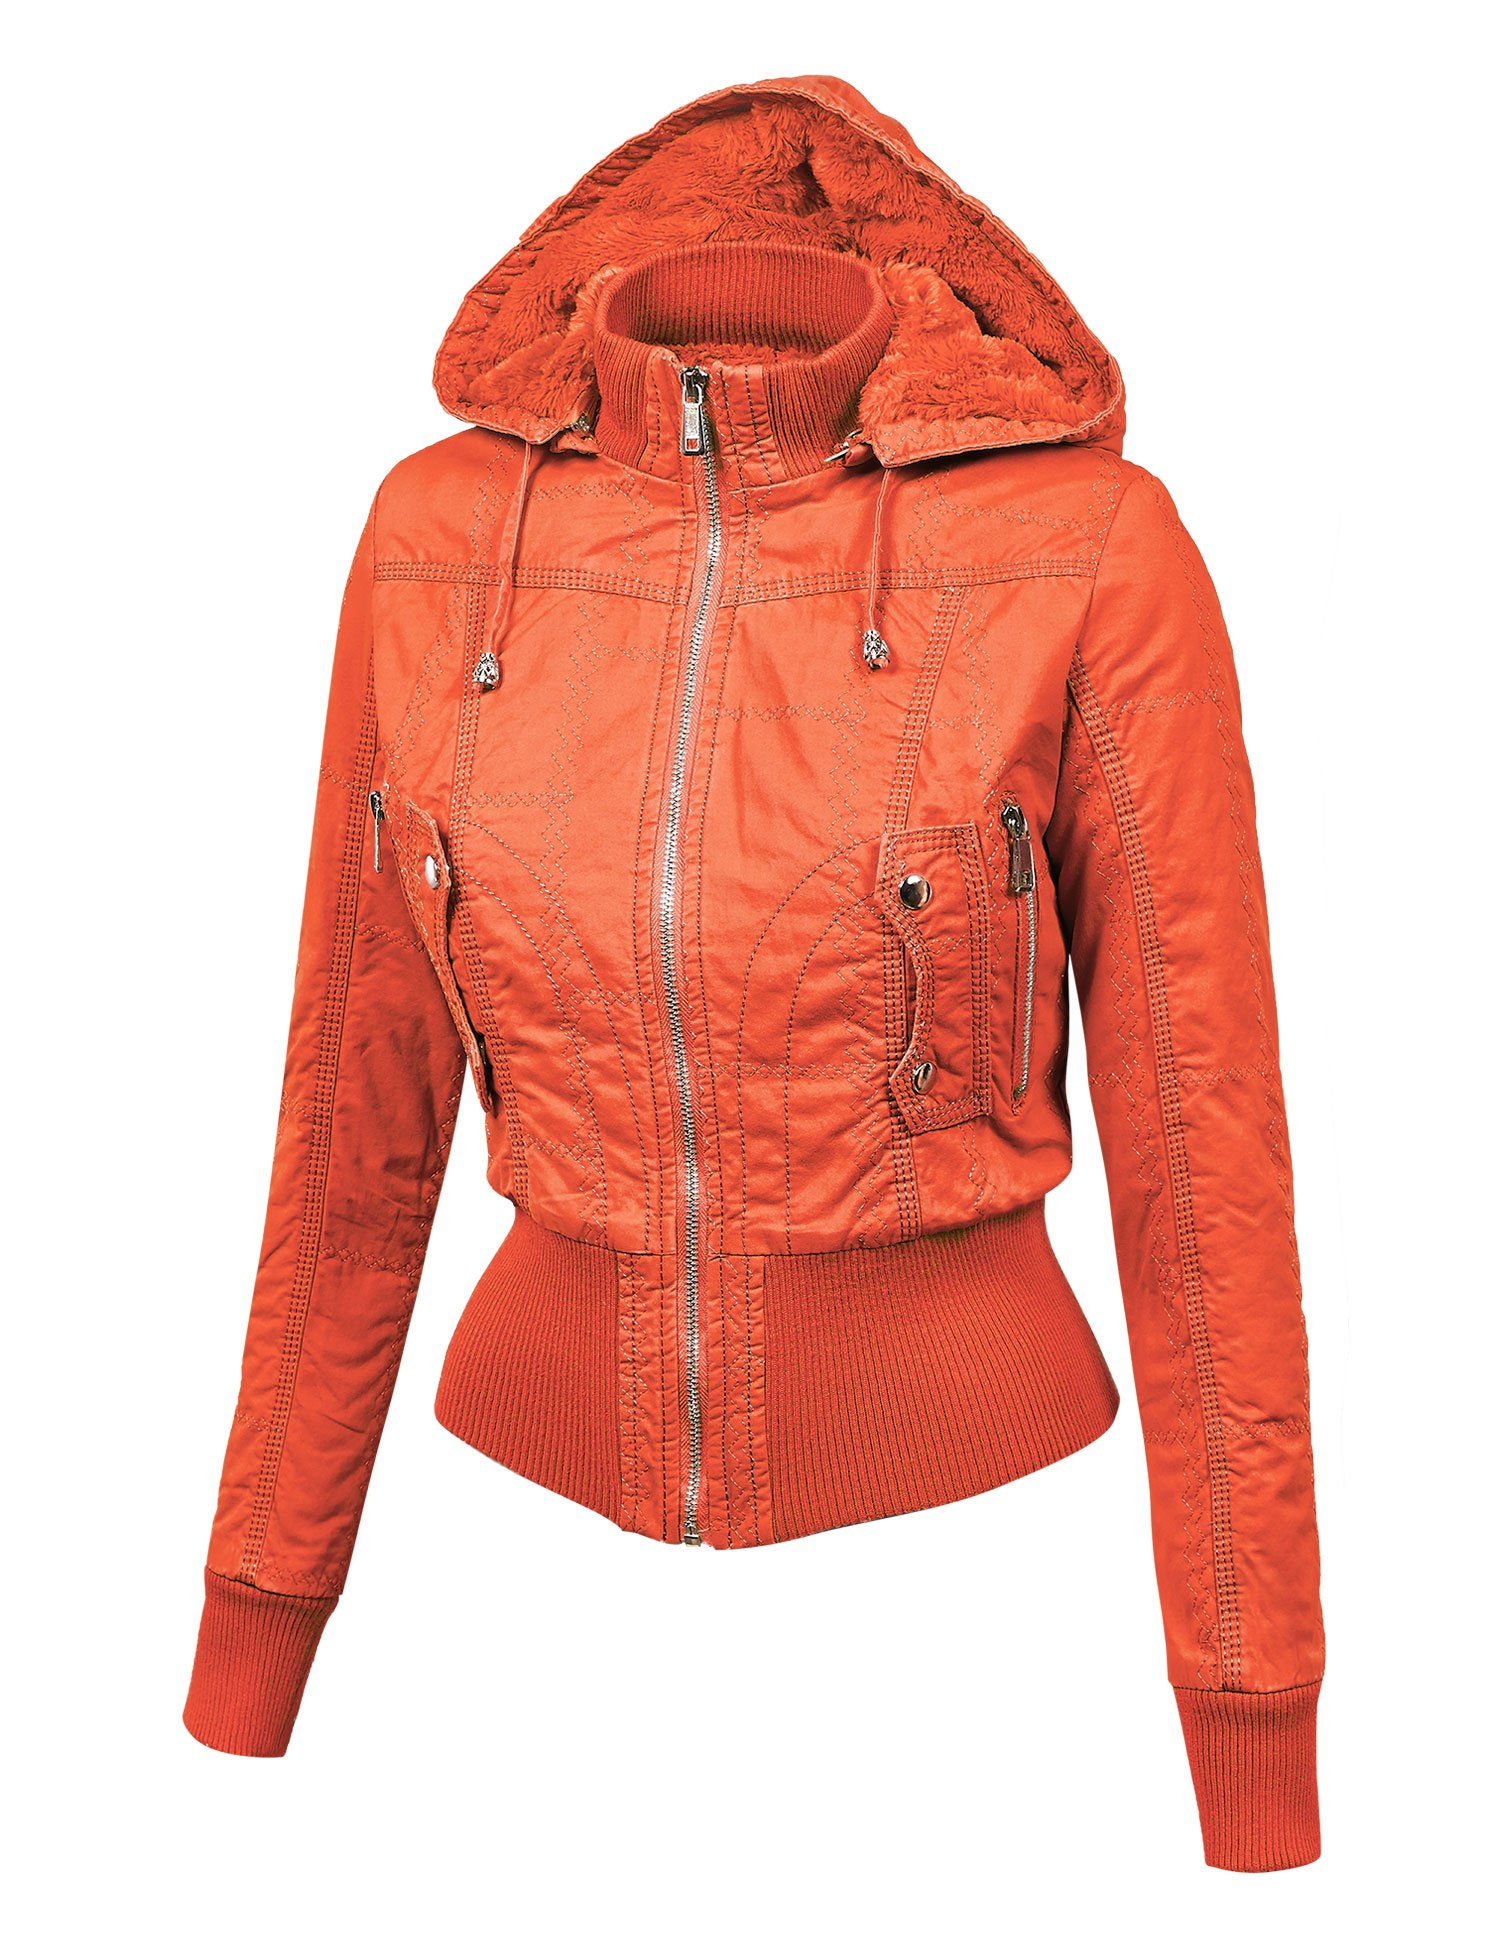 WJC1004 Womens Casual Inner Fleece Bomber Jacket with Removable Hoodie L CORAL by Lock and Love (Image #3)